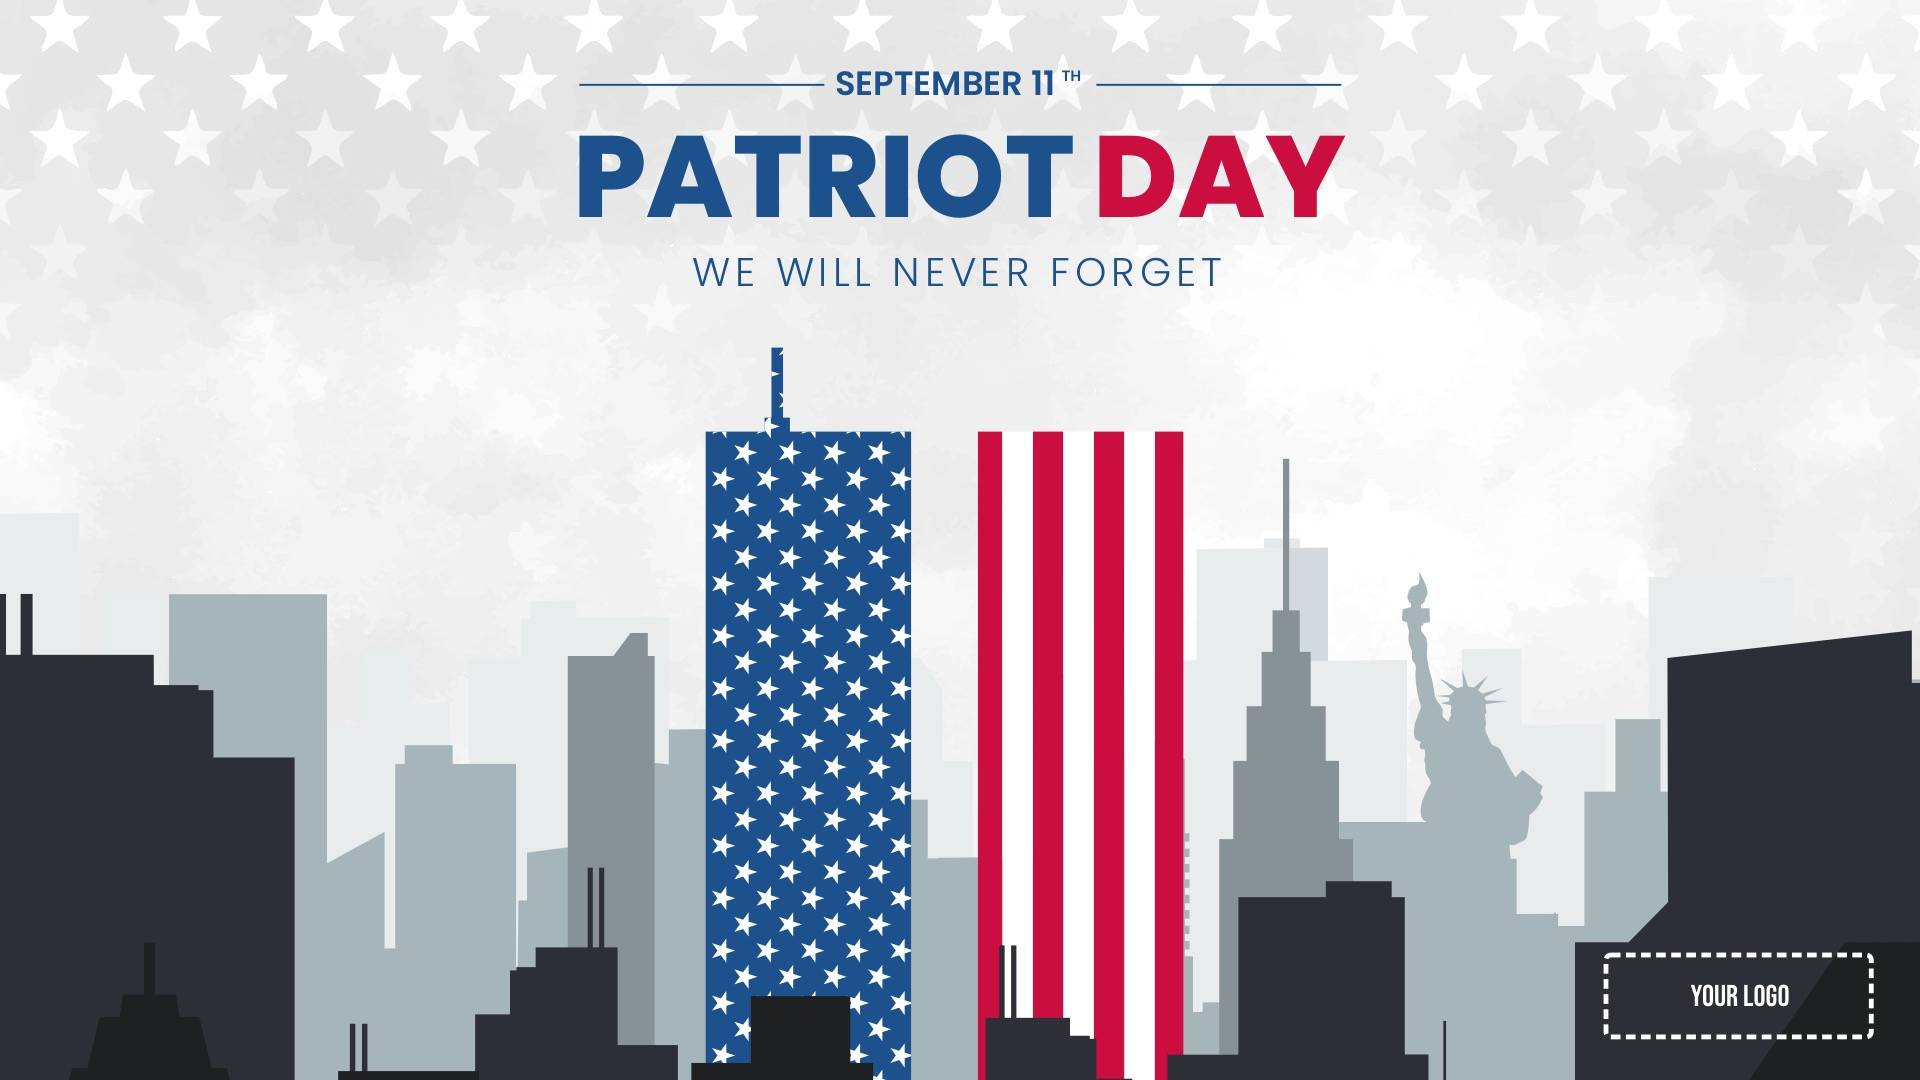 Patriot Day Digital Signage Template